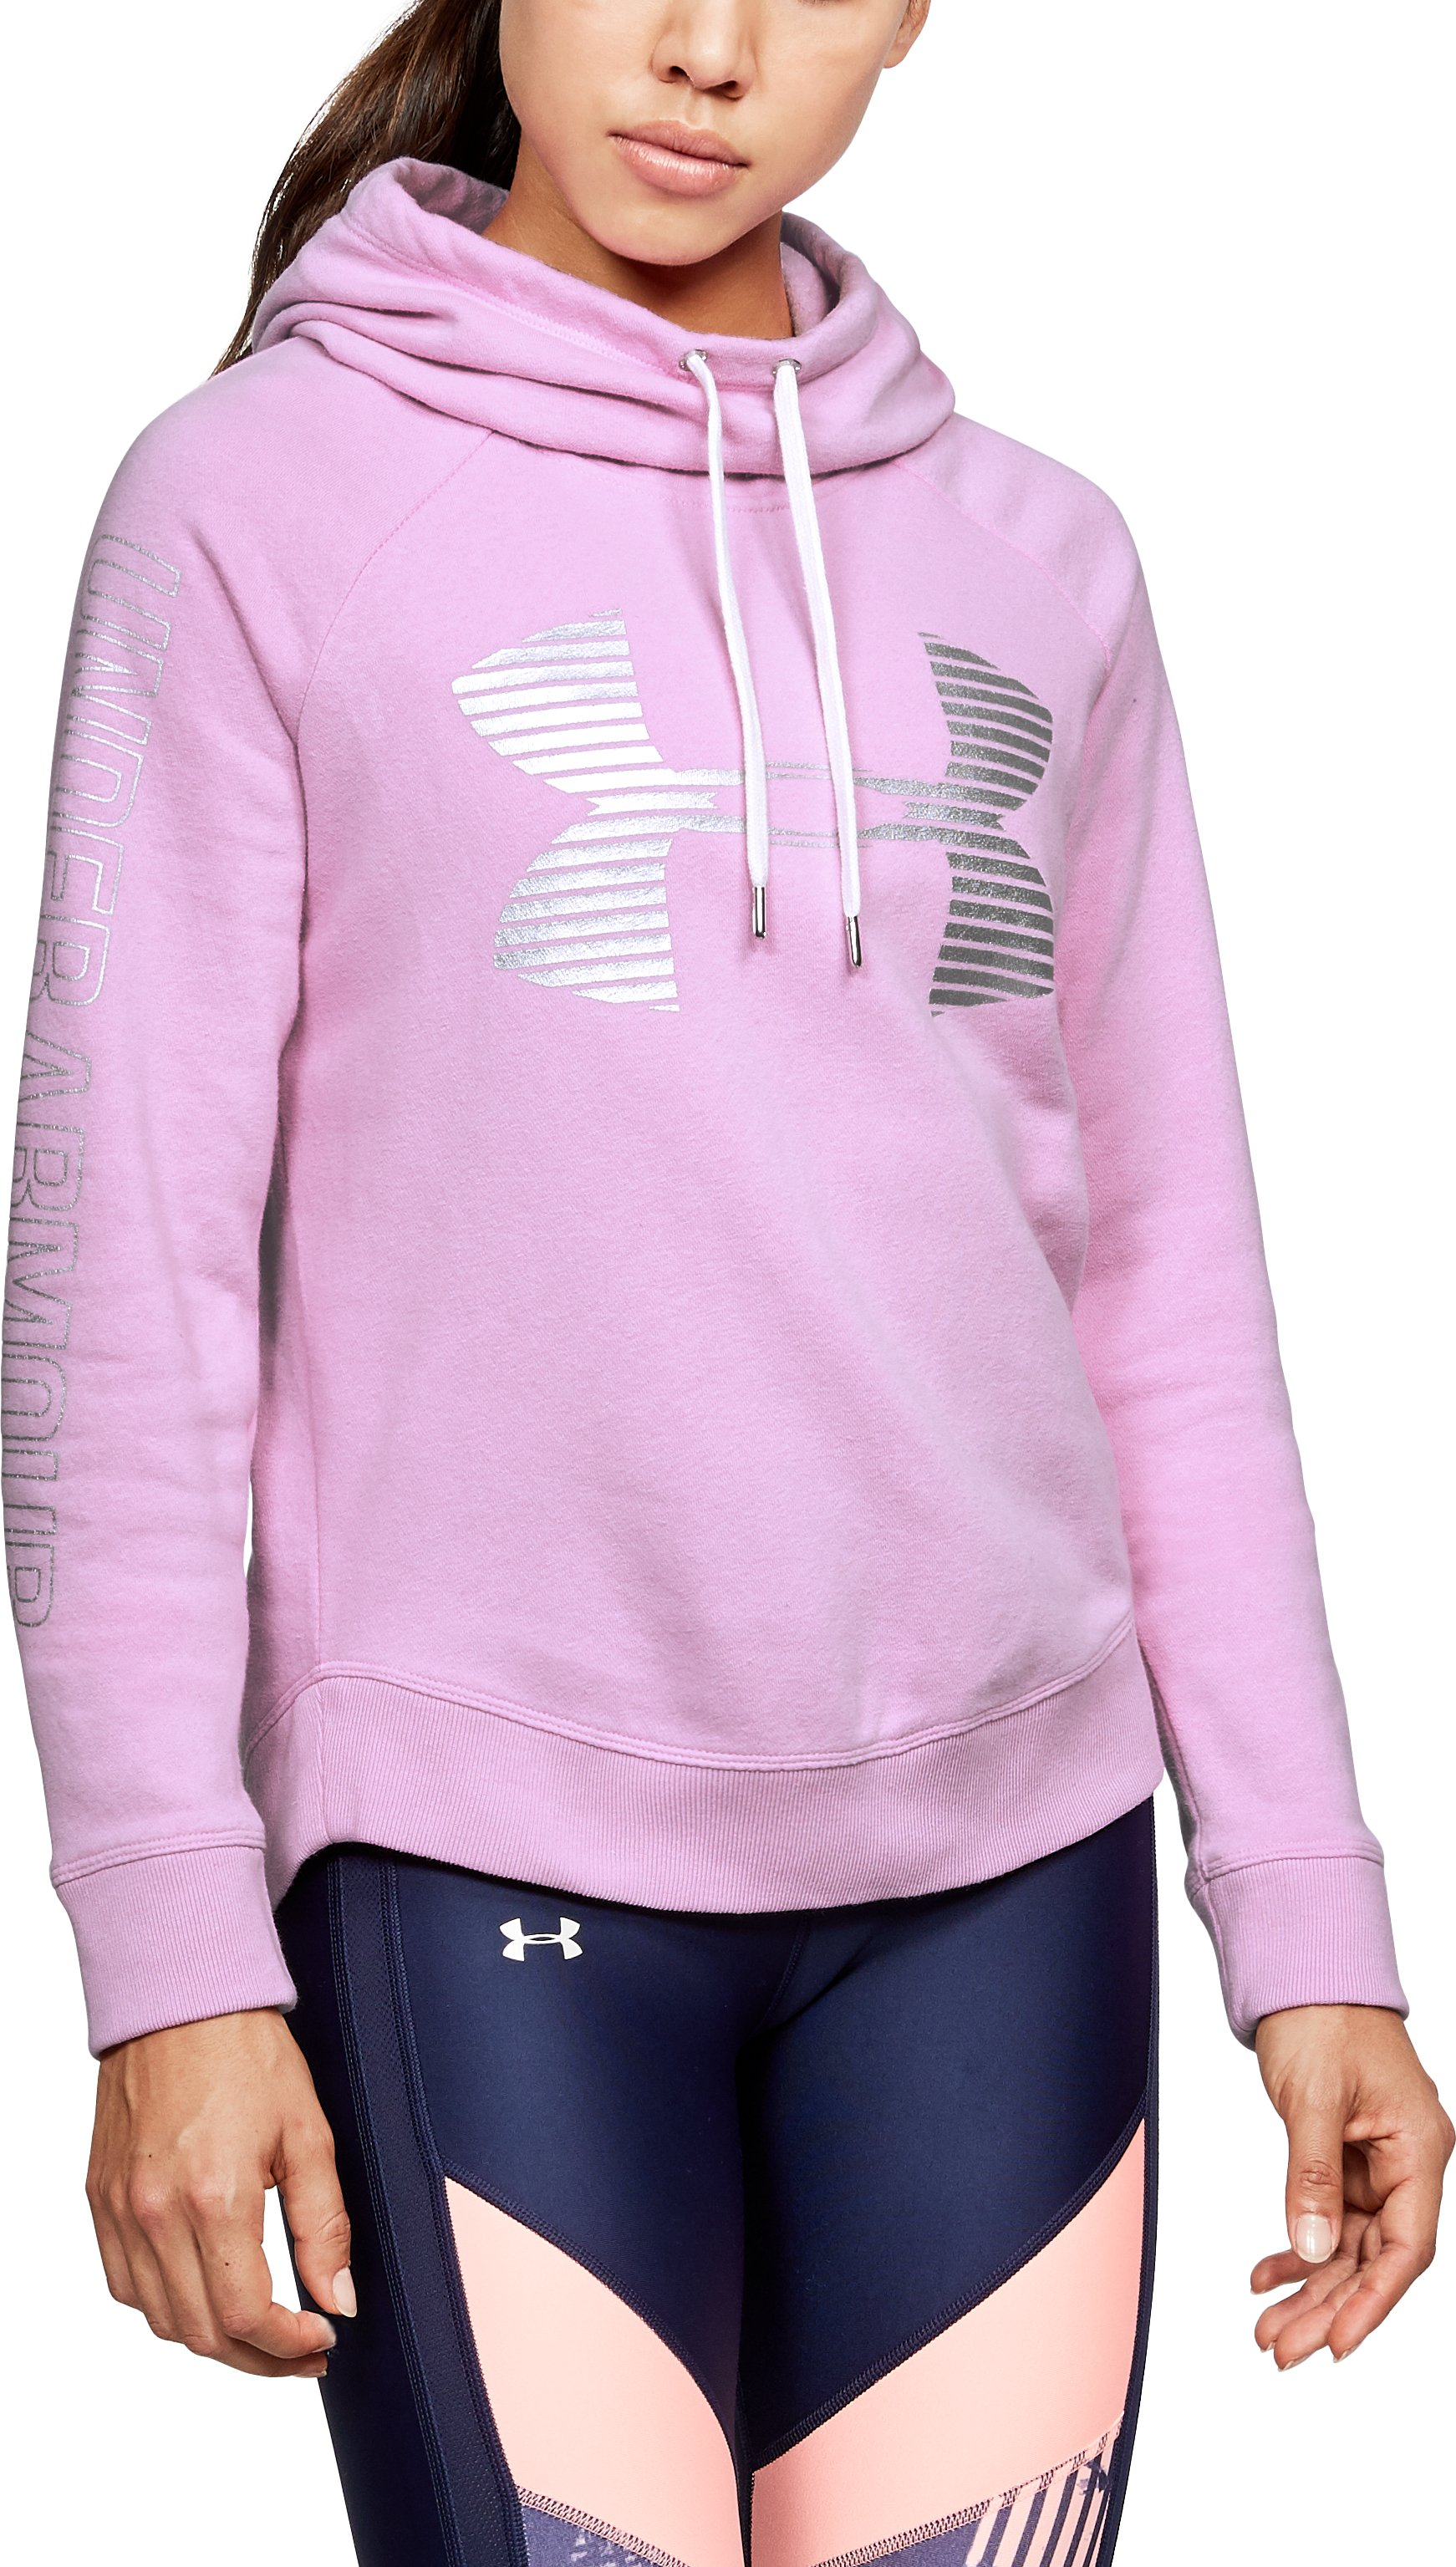 pullovers for kids Women's UA Favorite Fleece Pullover Great fit!...Great sweatshirt...I would buy it again